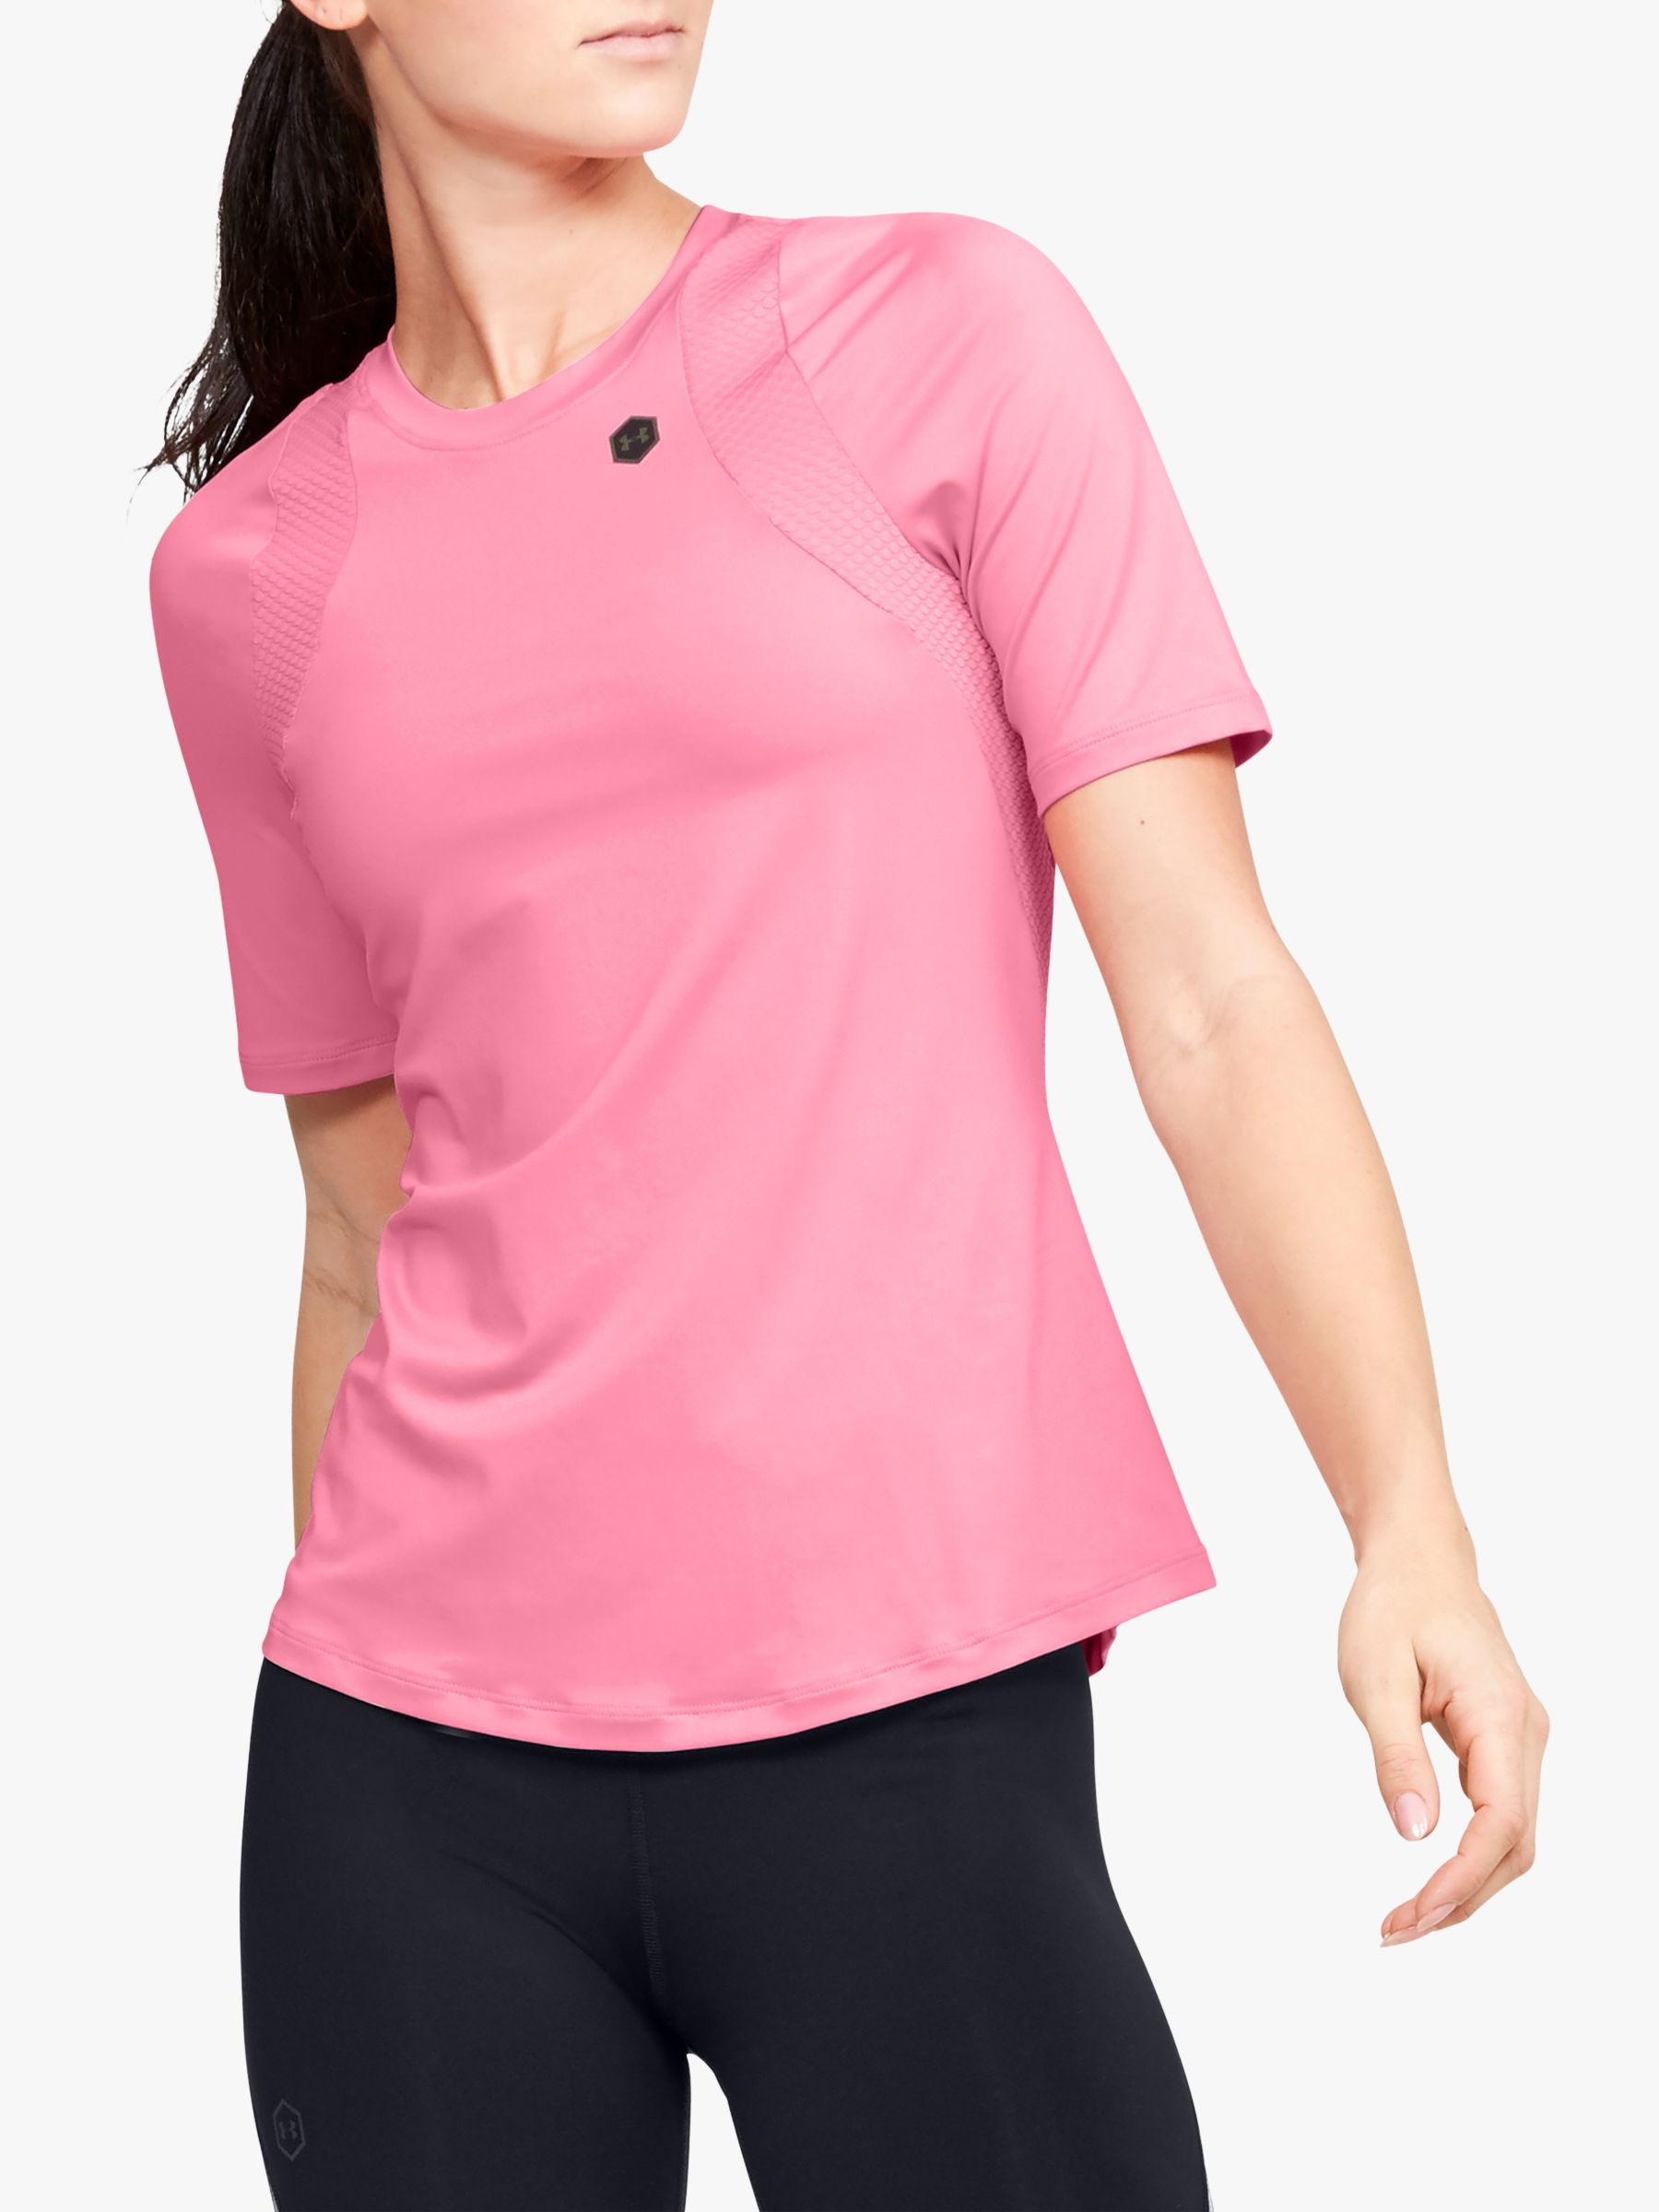 Under Armour Under Armour Rush Short Sleeve Training Top, Lipstick/Black